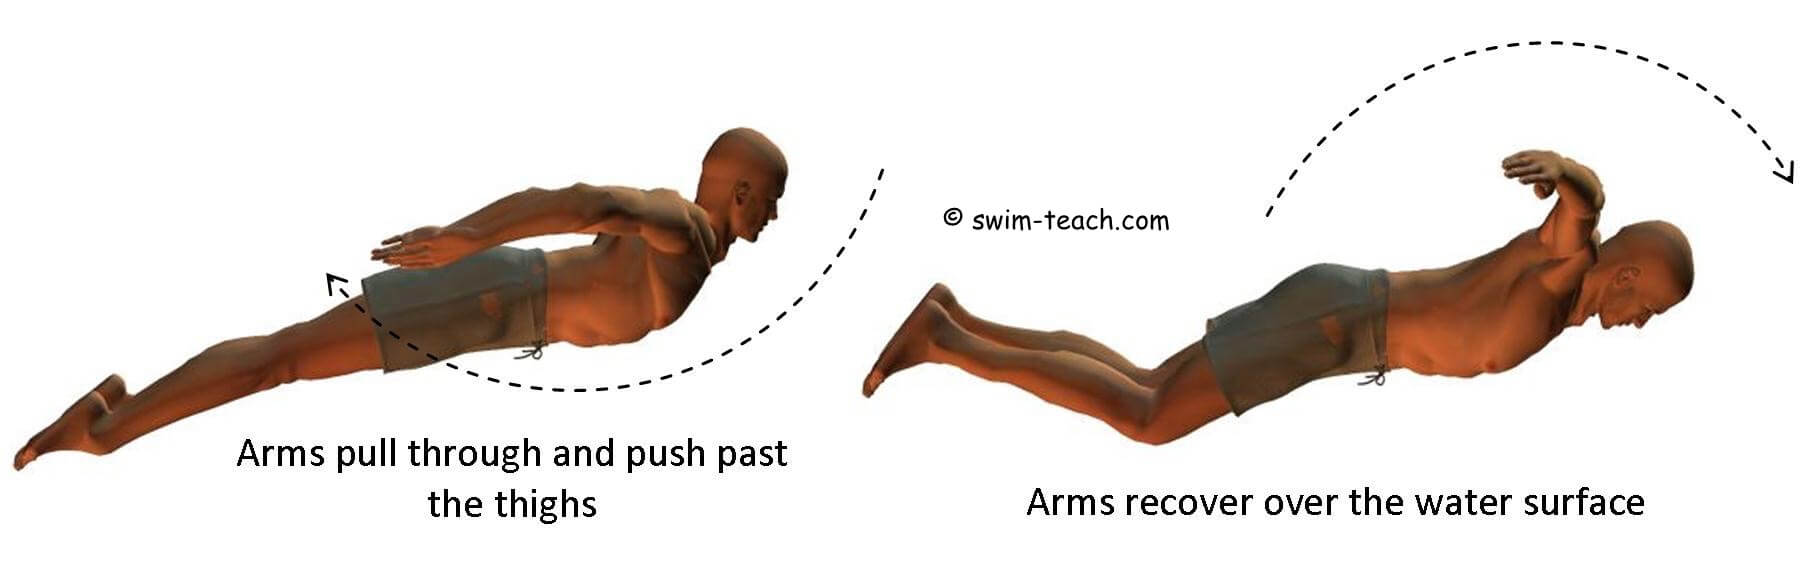 butterfly swimming arm technique for beginners